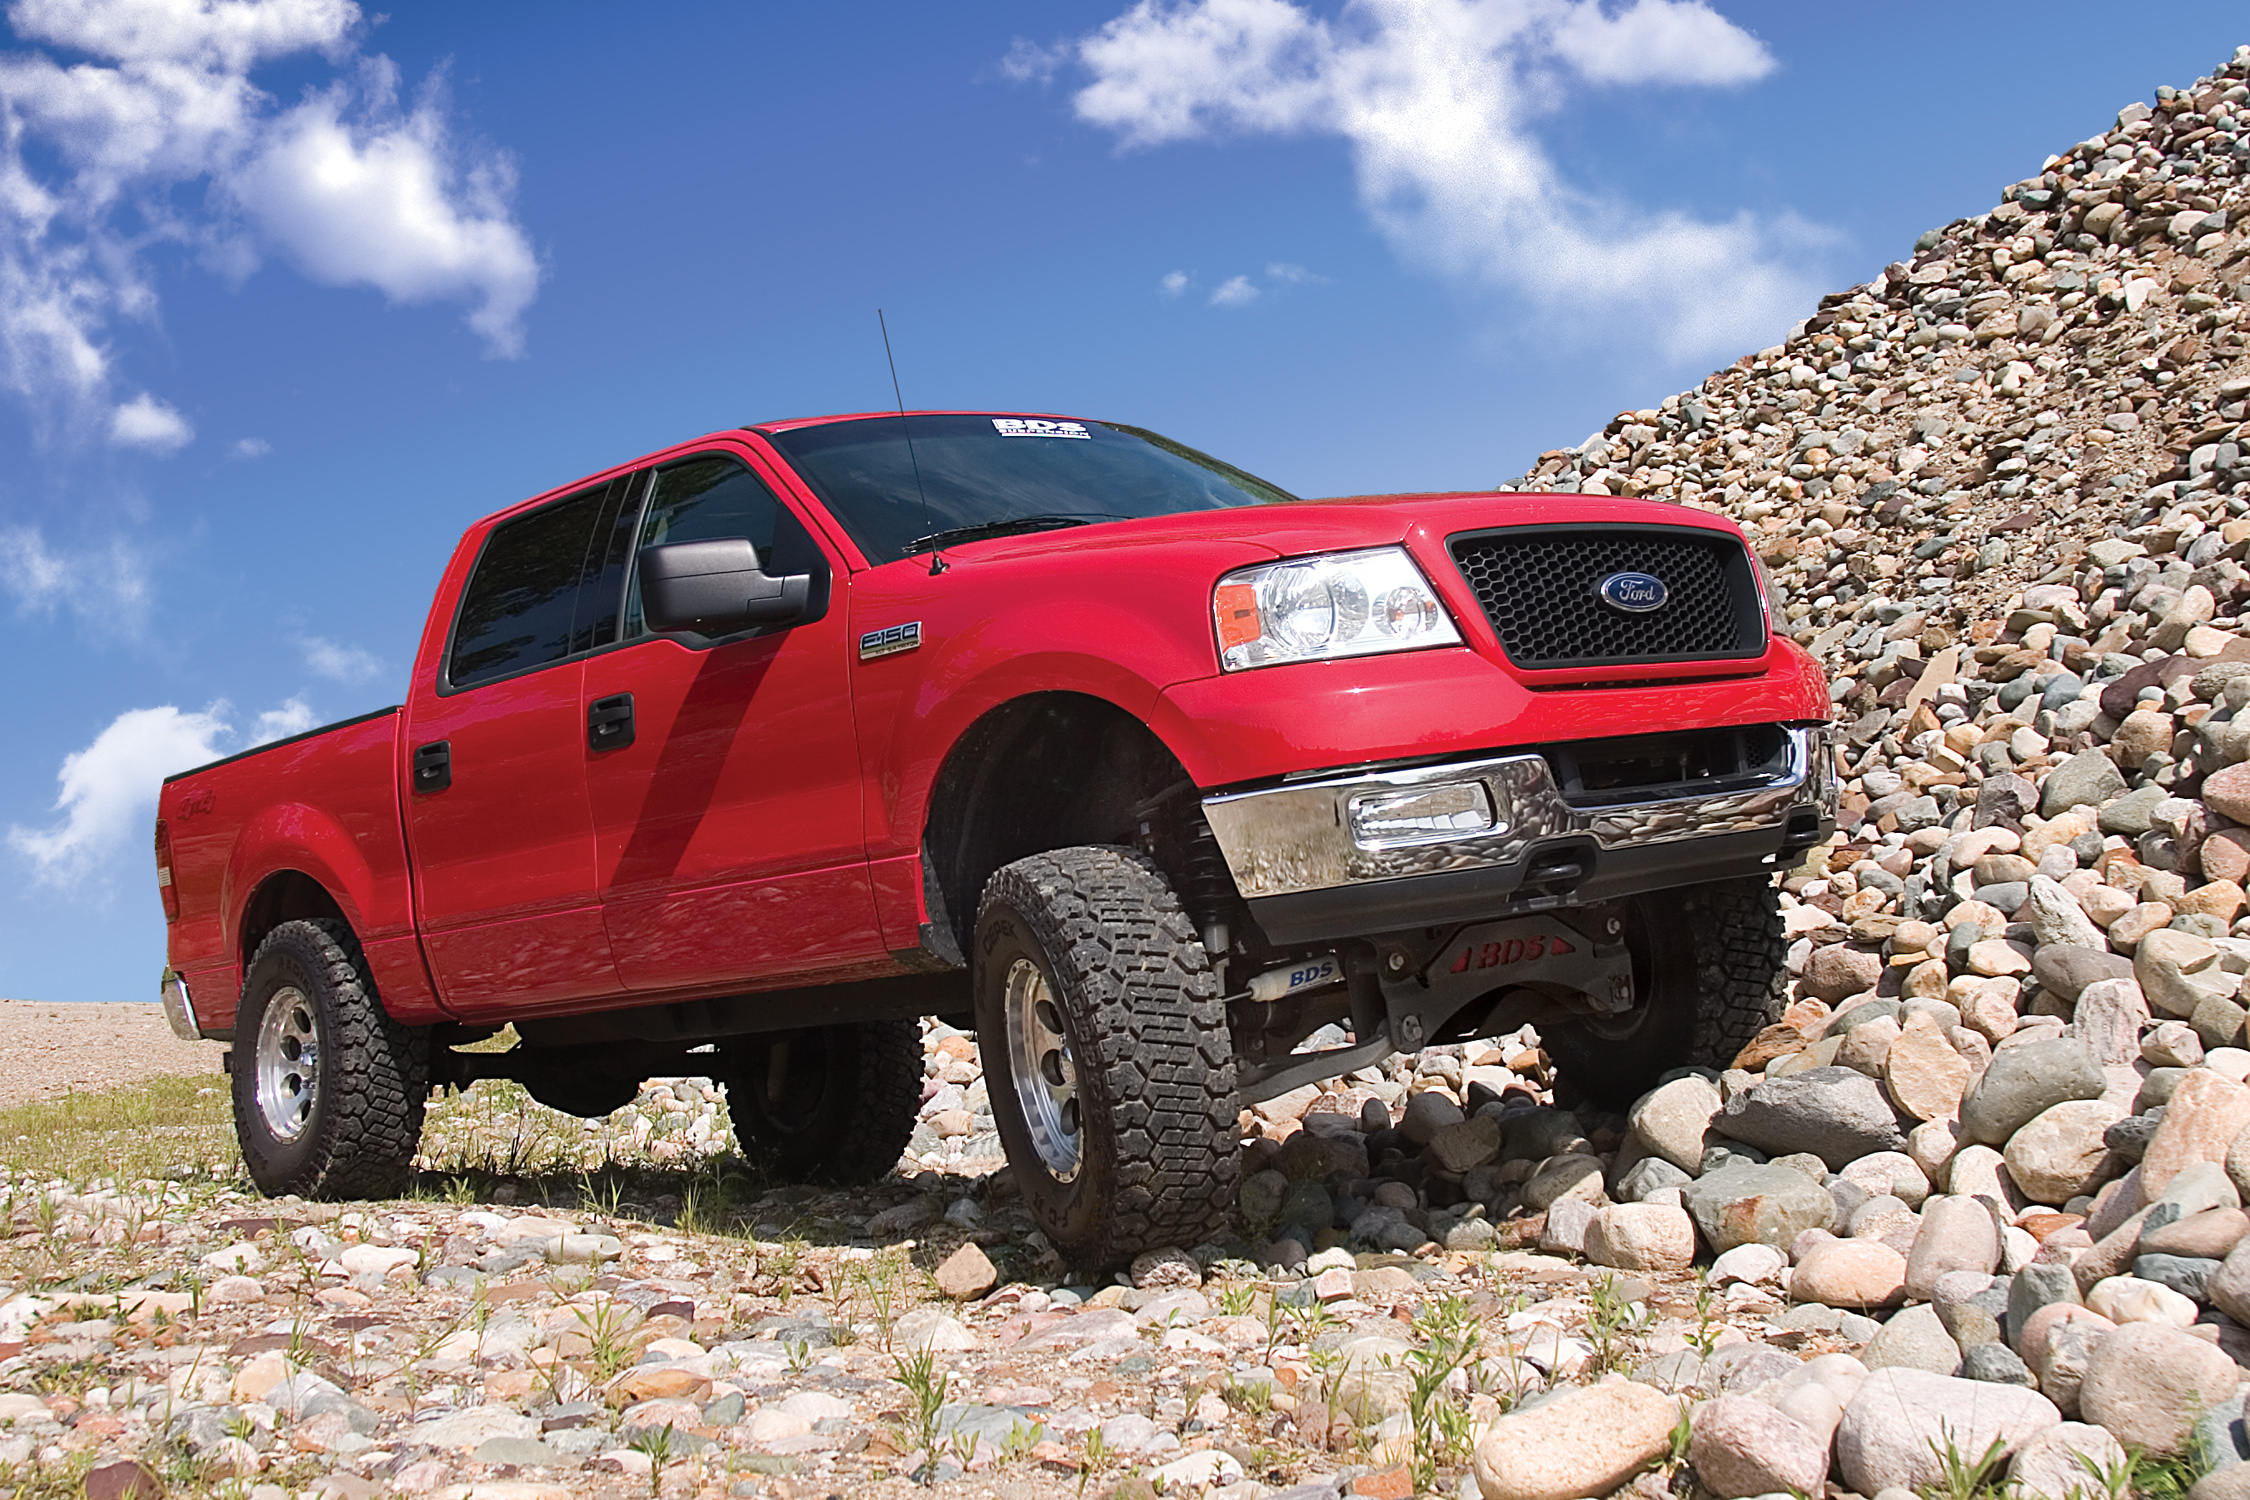 2014 Suspension Lifts ... BDS 6″ and 8″ Suspension Lifts for 2004-2008 Ford F150 4WD Trucks